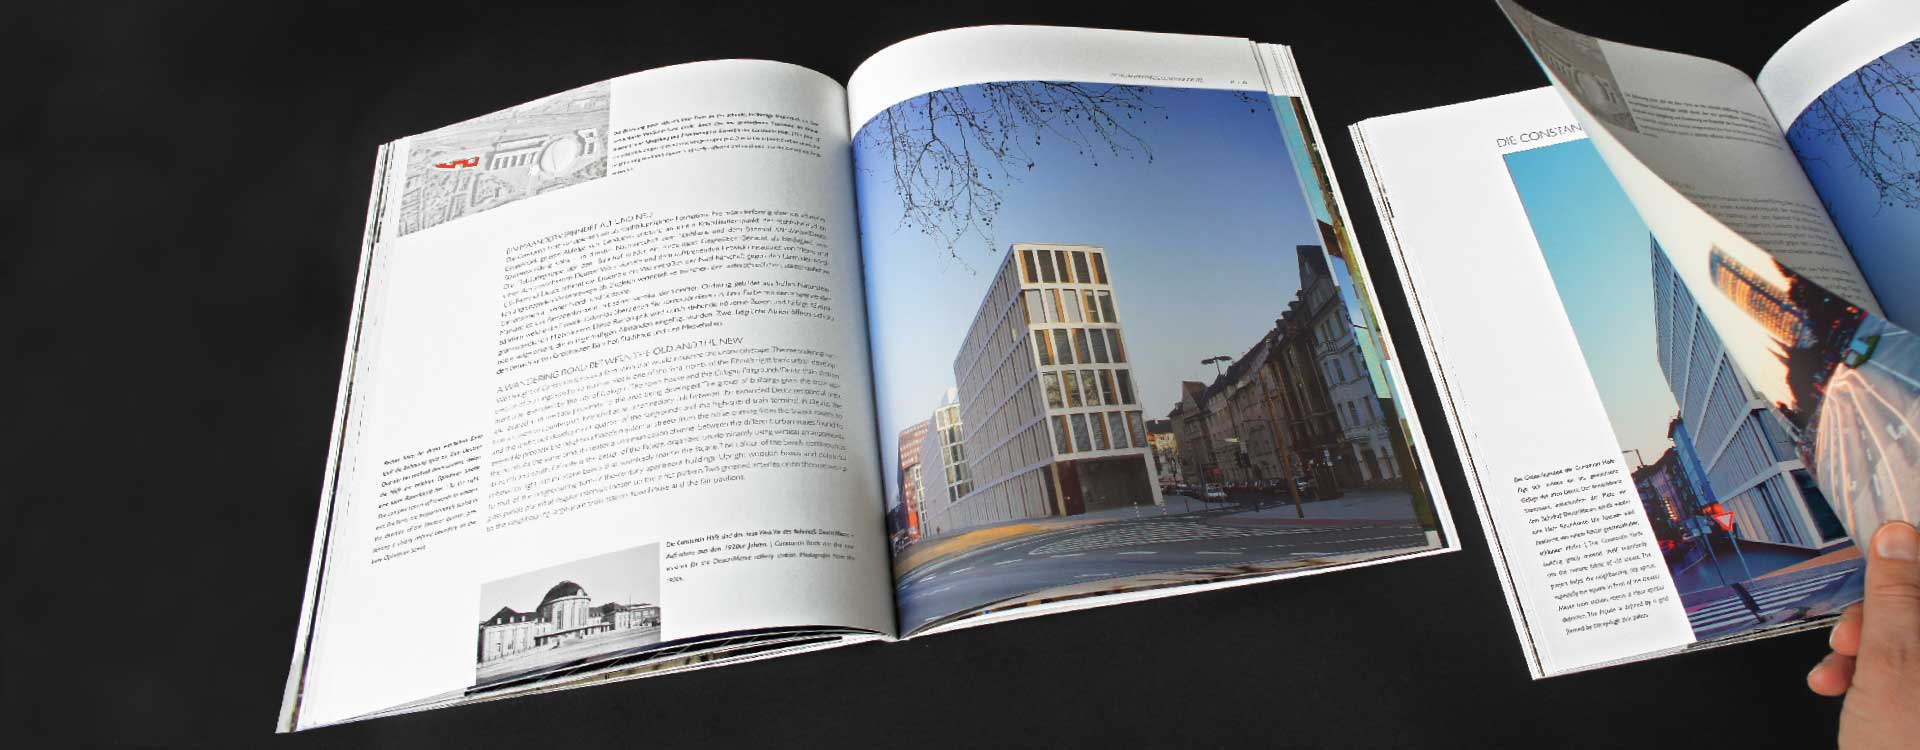 Inside pages of image brochure for JSWD Architekten, Köln; Design: Kattrin Richter | Graphic Design Studio